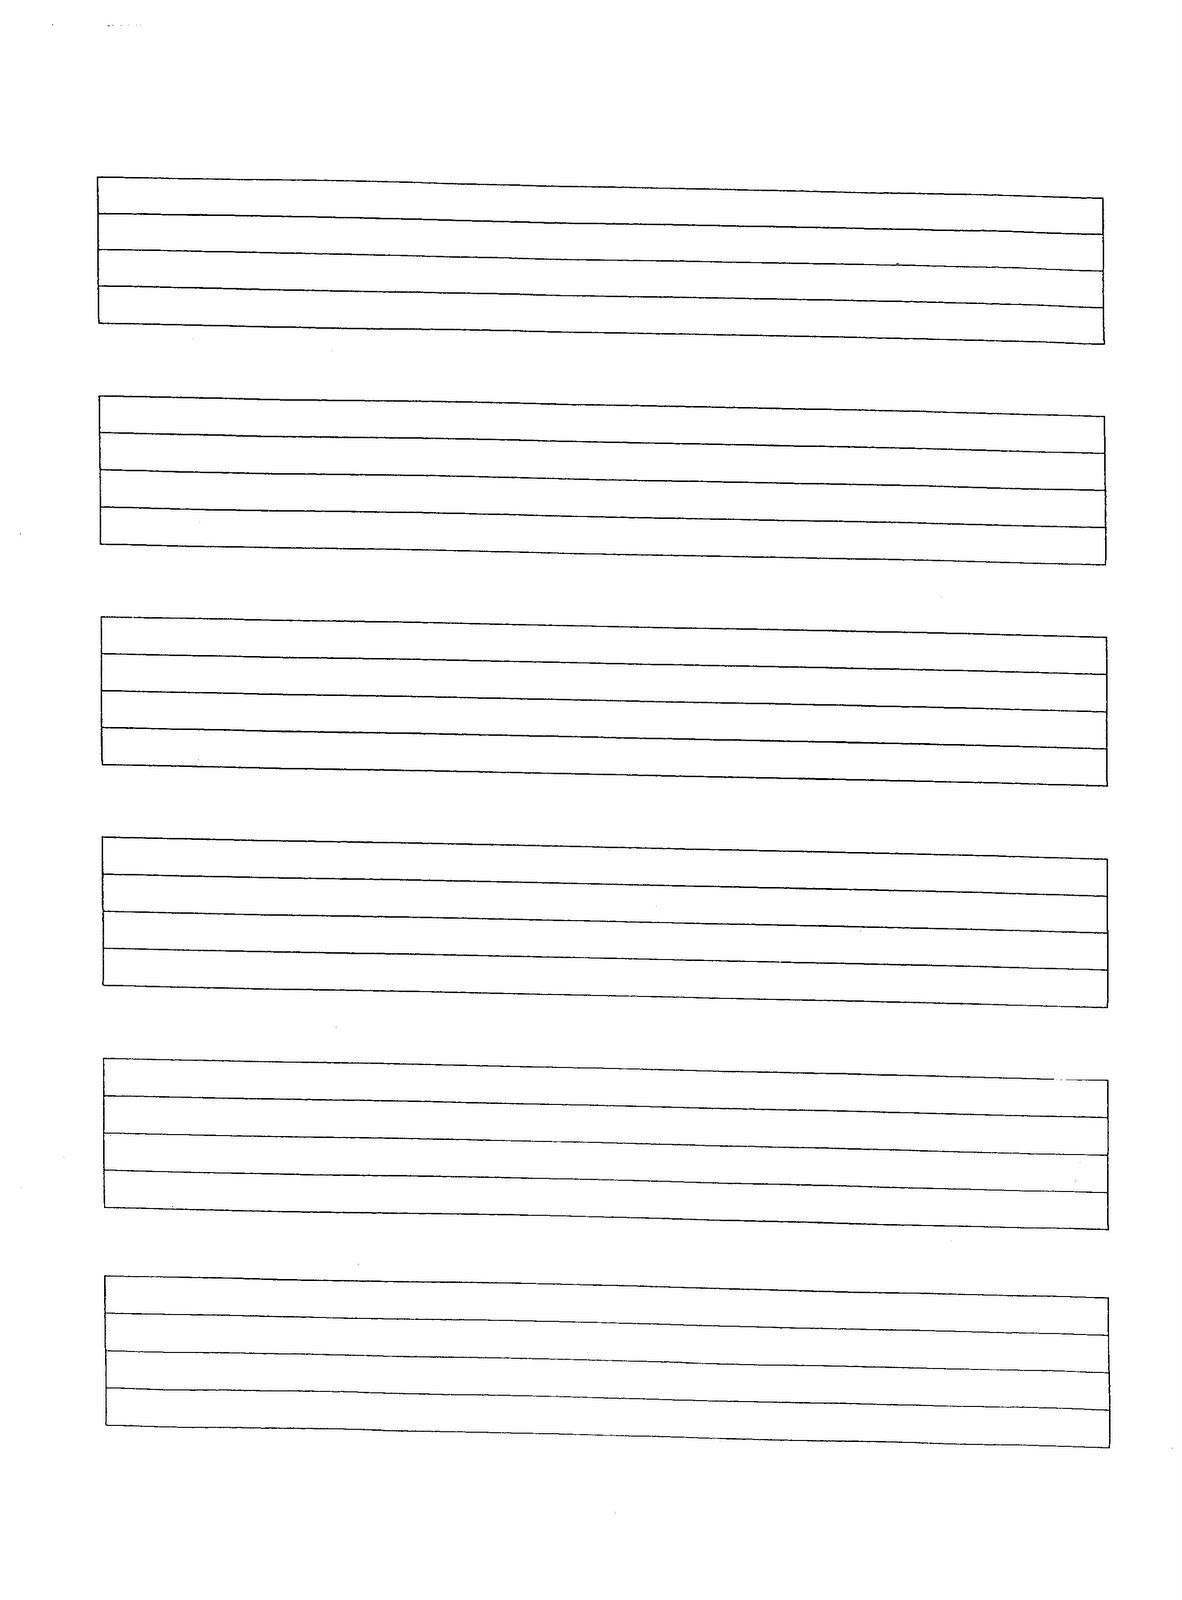 music manuscript paper free printable | SITES WHERE YOU CAN FIND ...